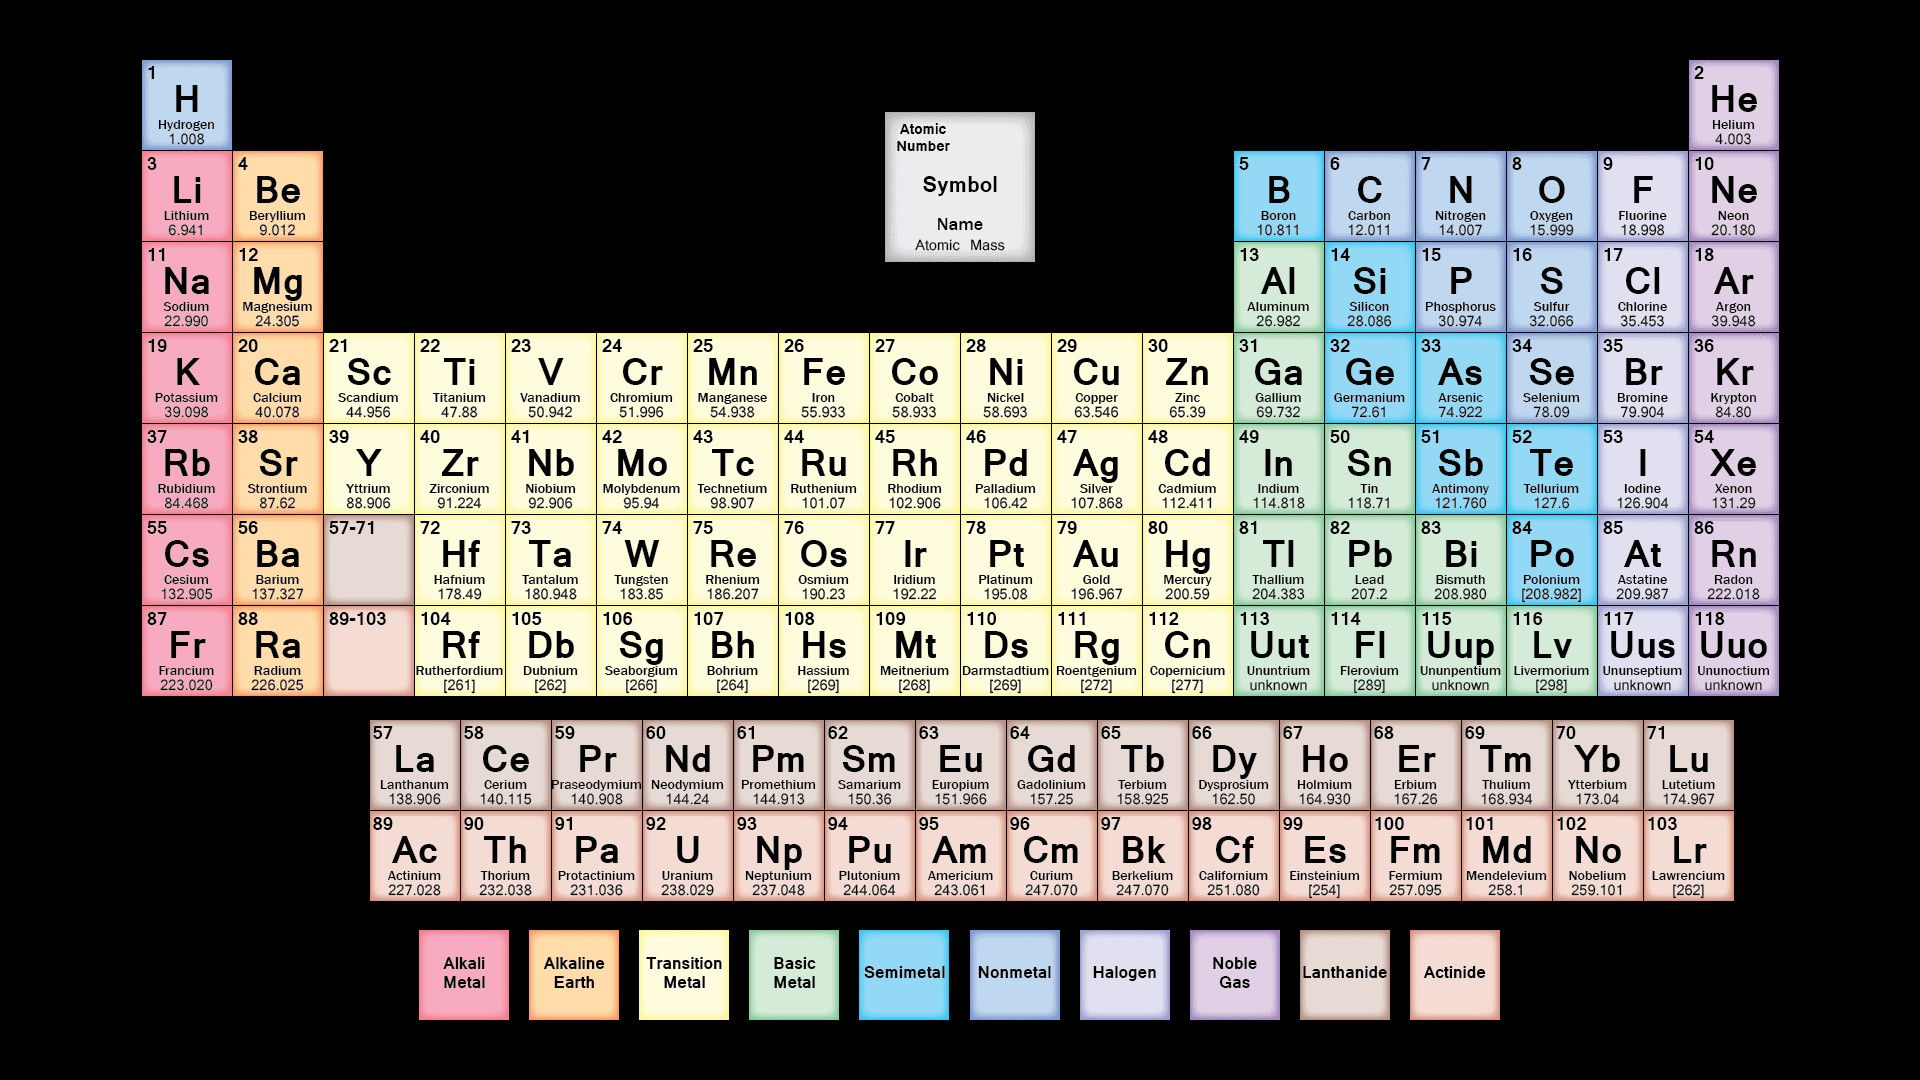 Periodictablemuted 56a12d823df78cf Aaa